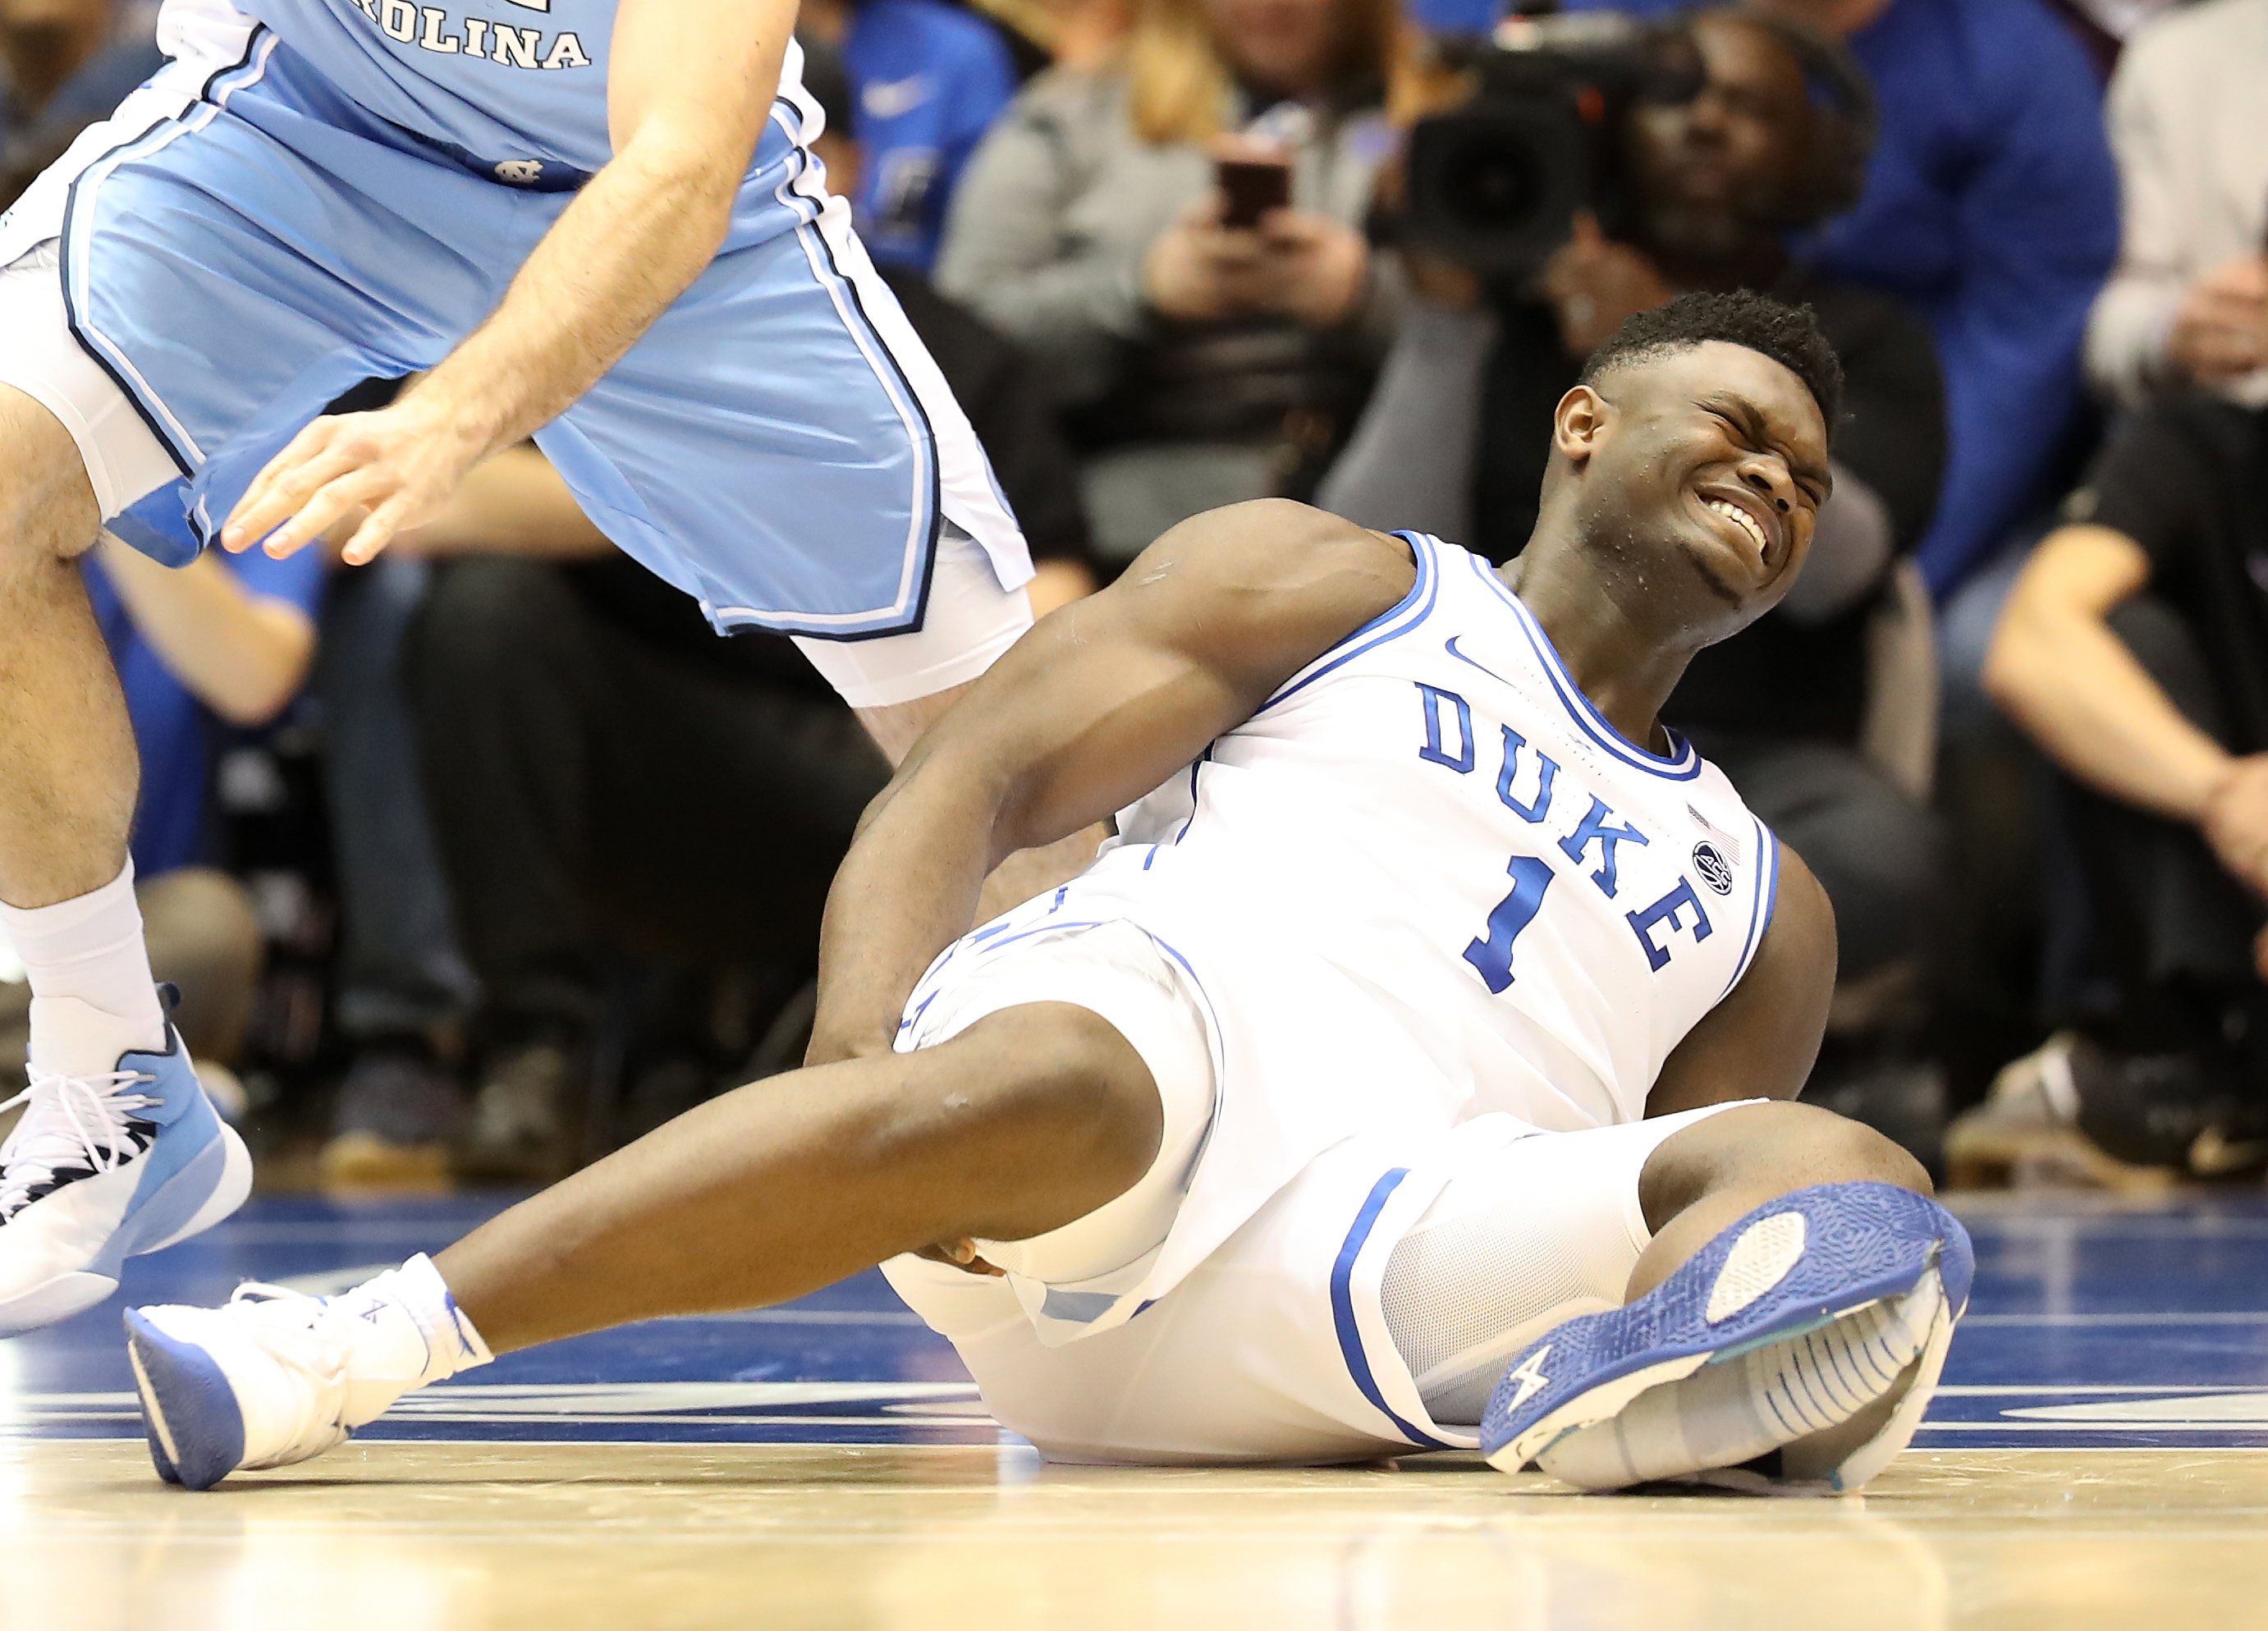 Zion Williamson of the Duke Blue Devils reacts after falling as his shoe breaks against the North Carolina Tar Heels during their game at Cameron Indoor Stadium on February 20, 2019 in Durham, North Carolina.